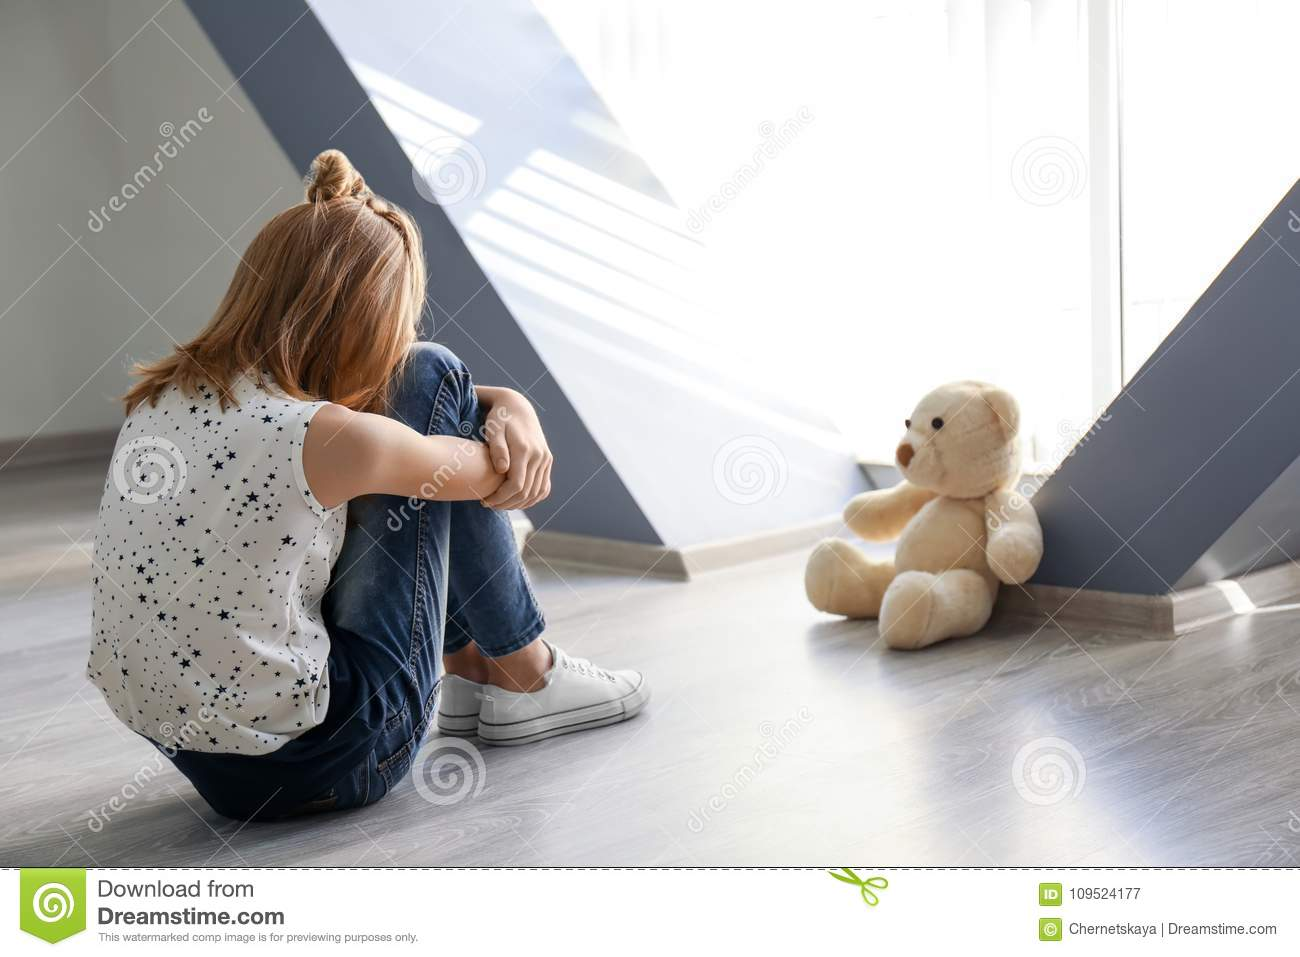 Download Little Girl With Teddy Bear Sitting On Floor Near Window Stock Image - Image of difficulty, month: 109524177